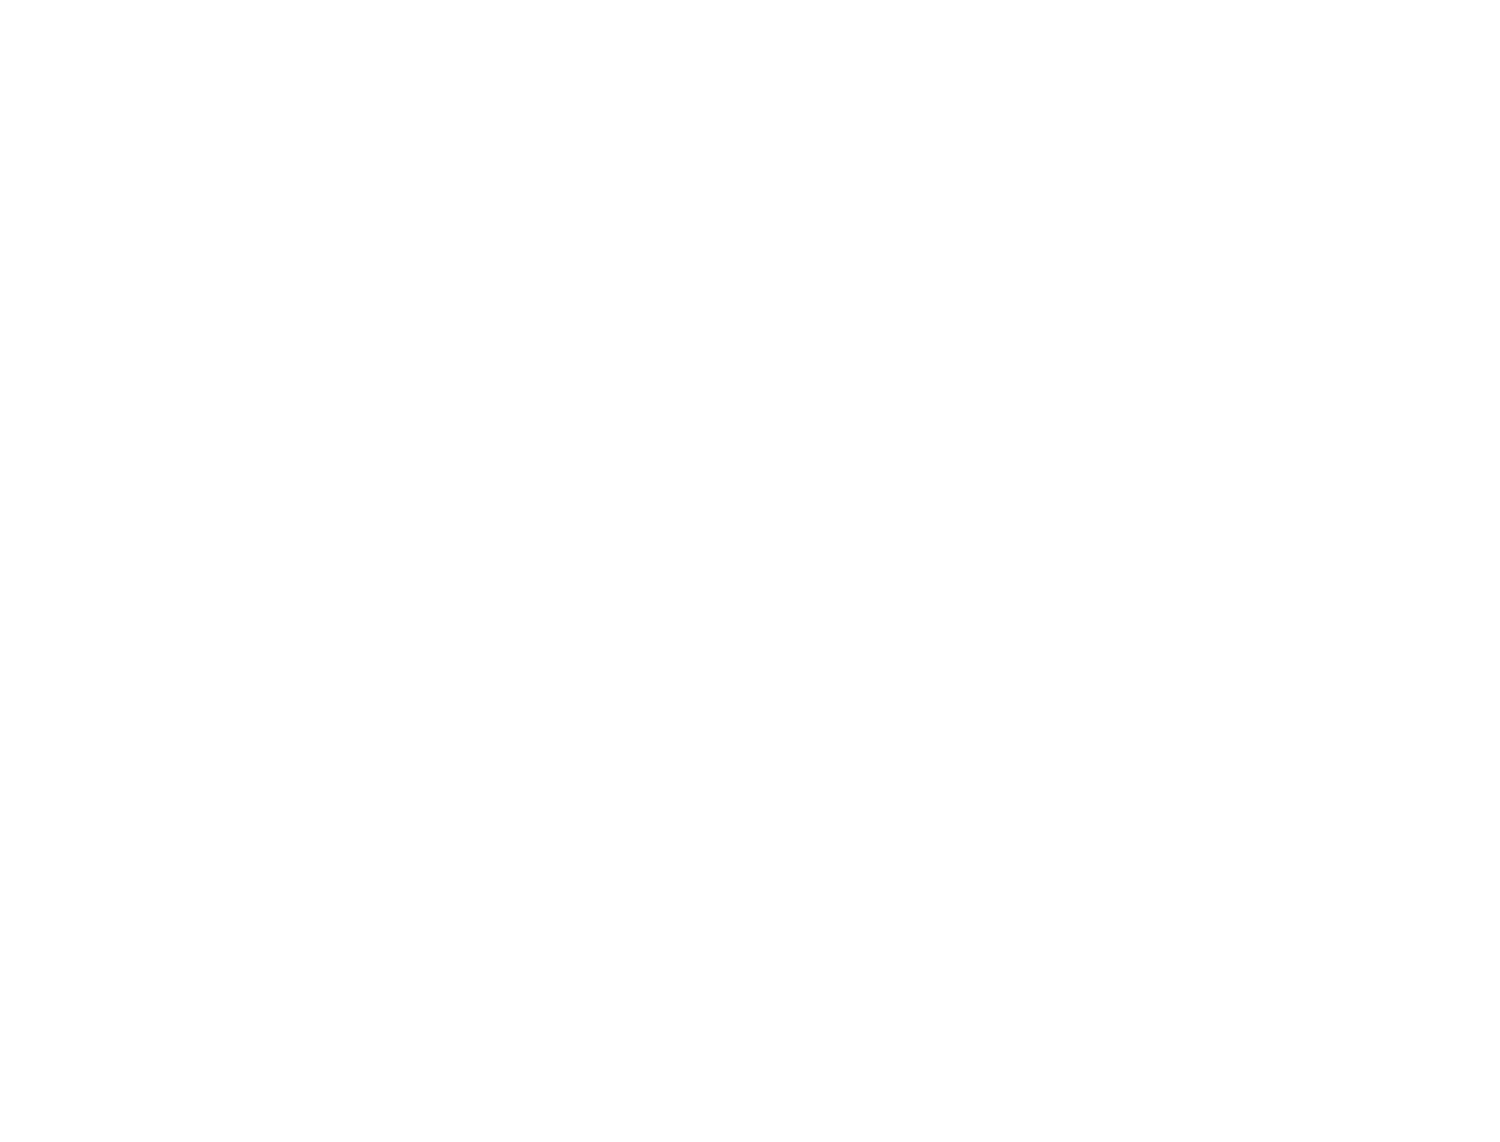 Ignite Training facility